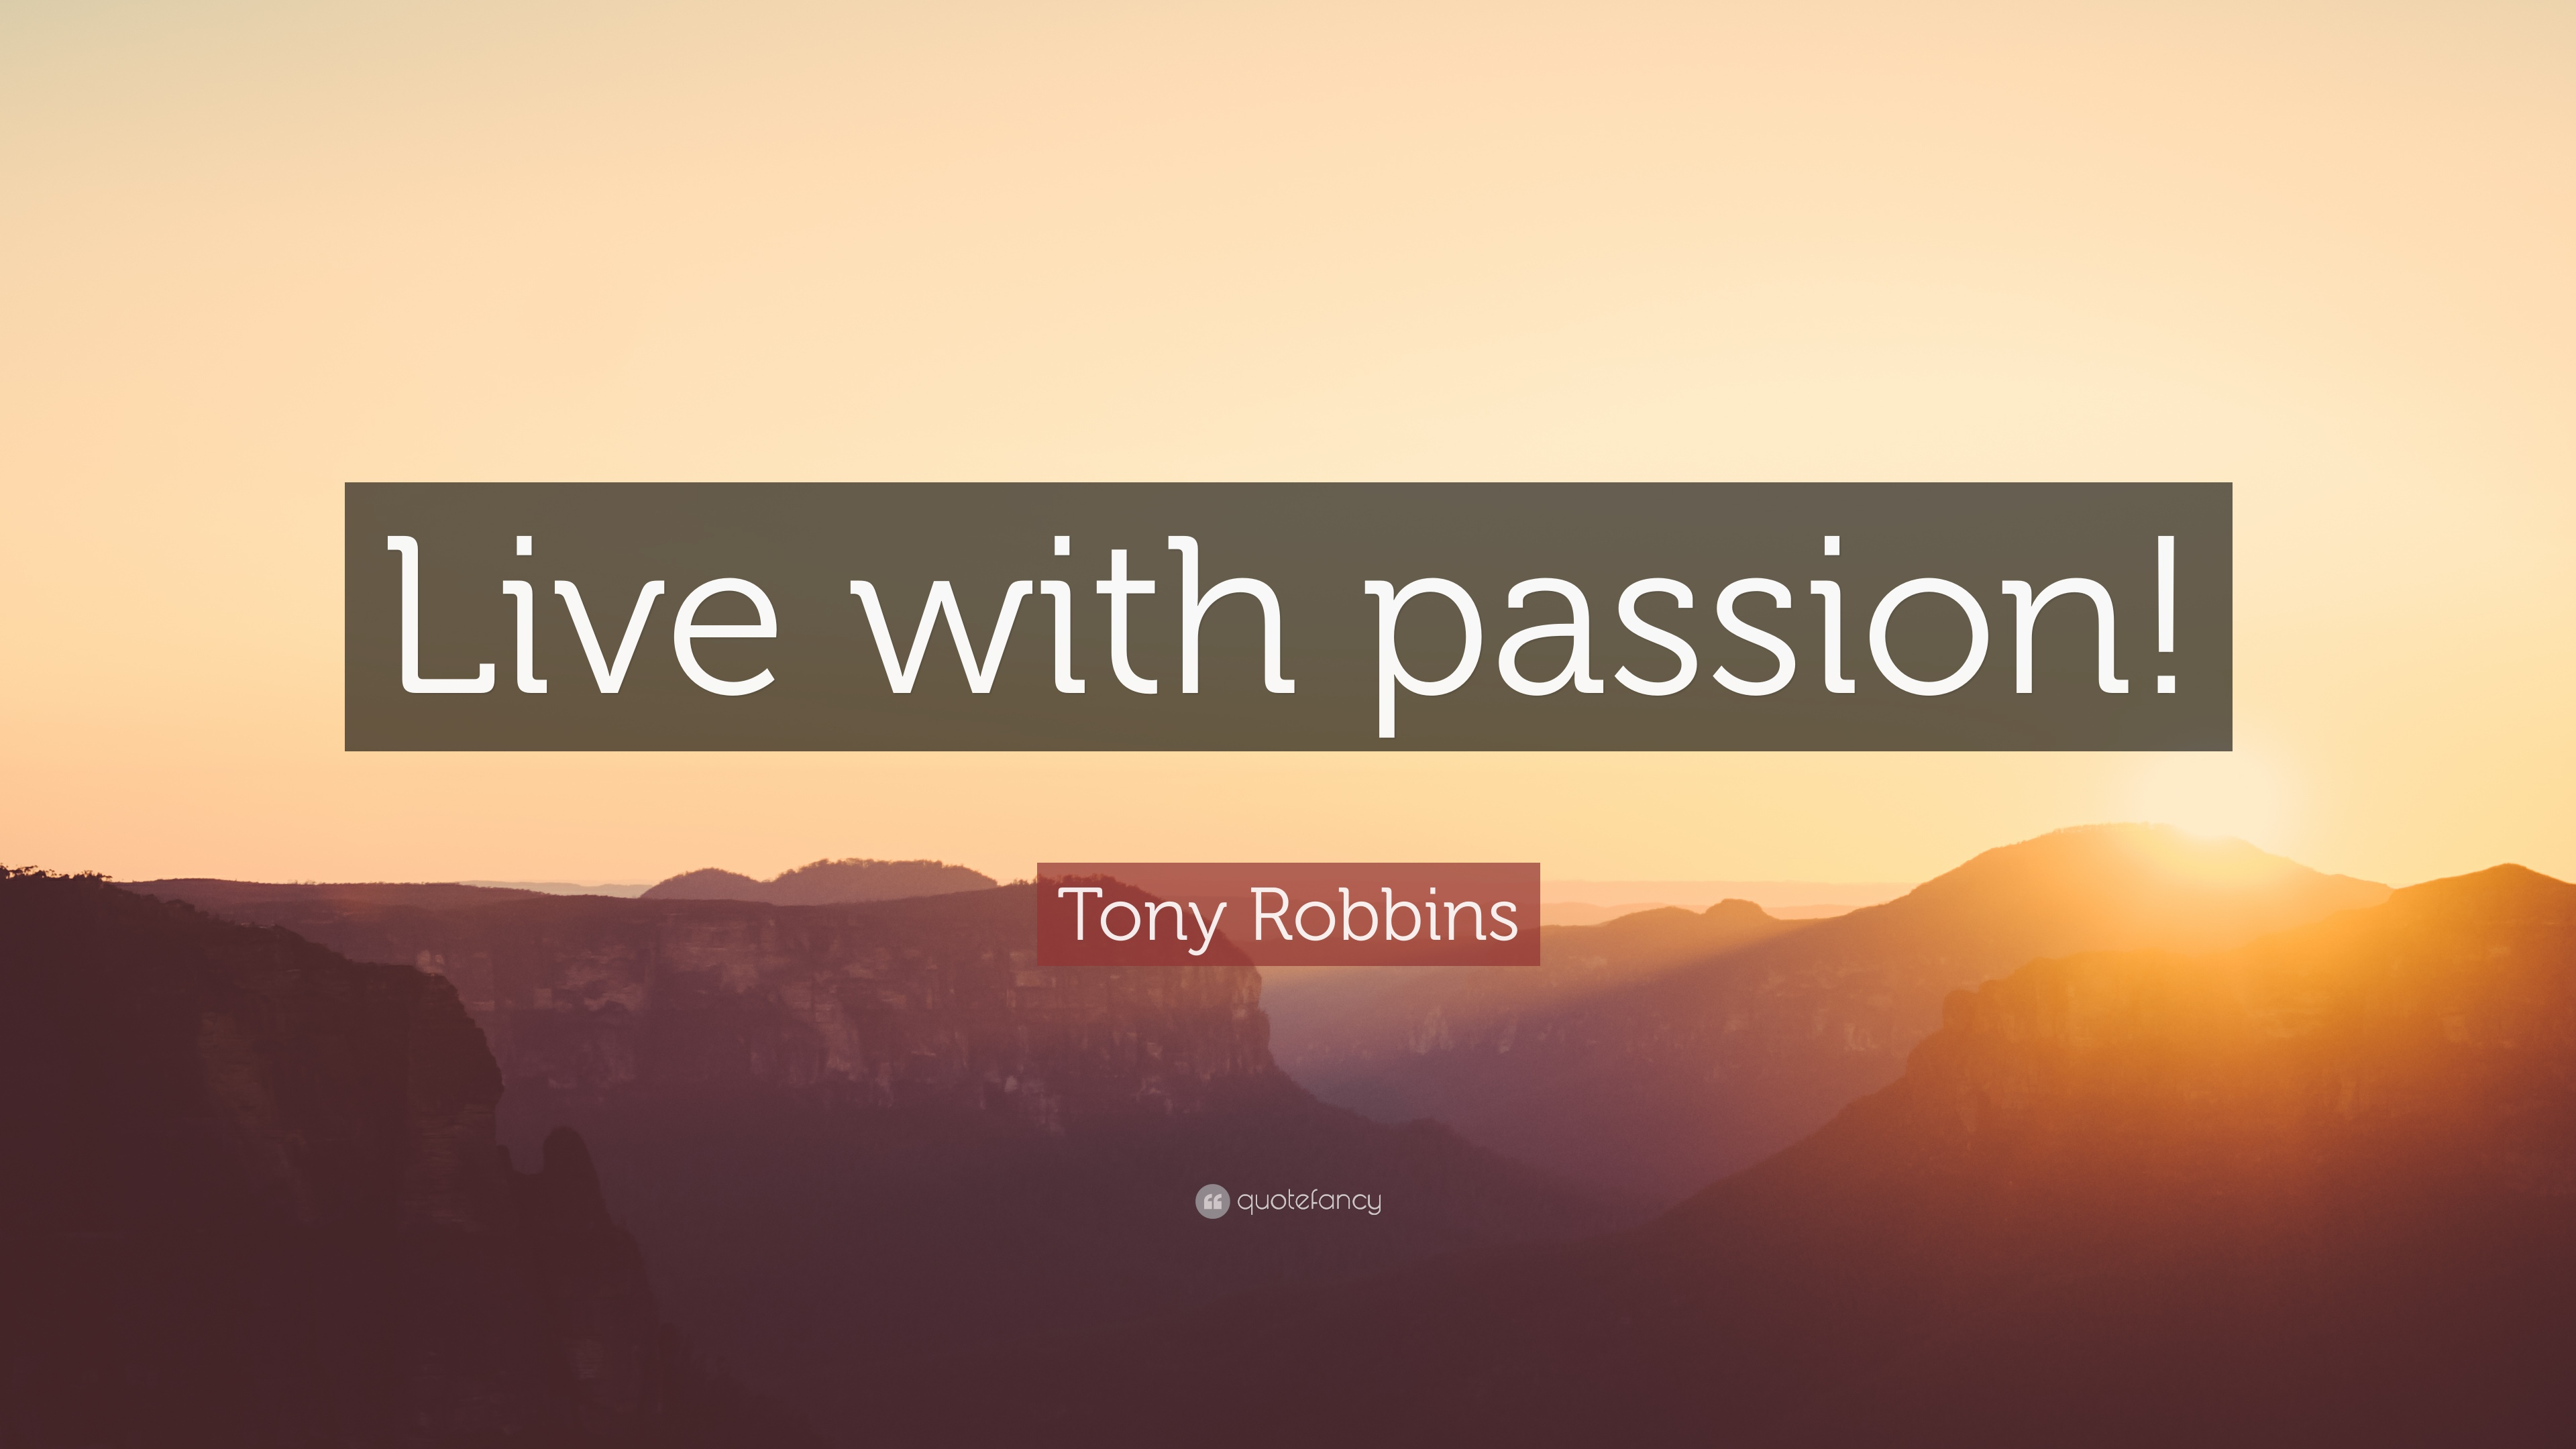 Passion Quotes (40 wallpapers) - Quotefancy